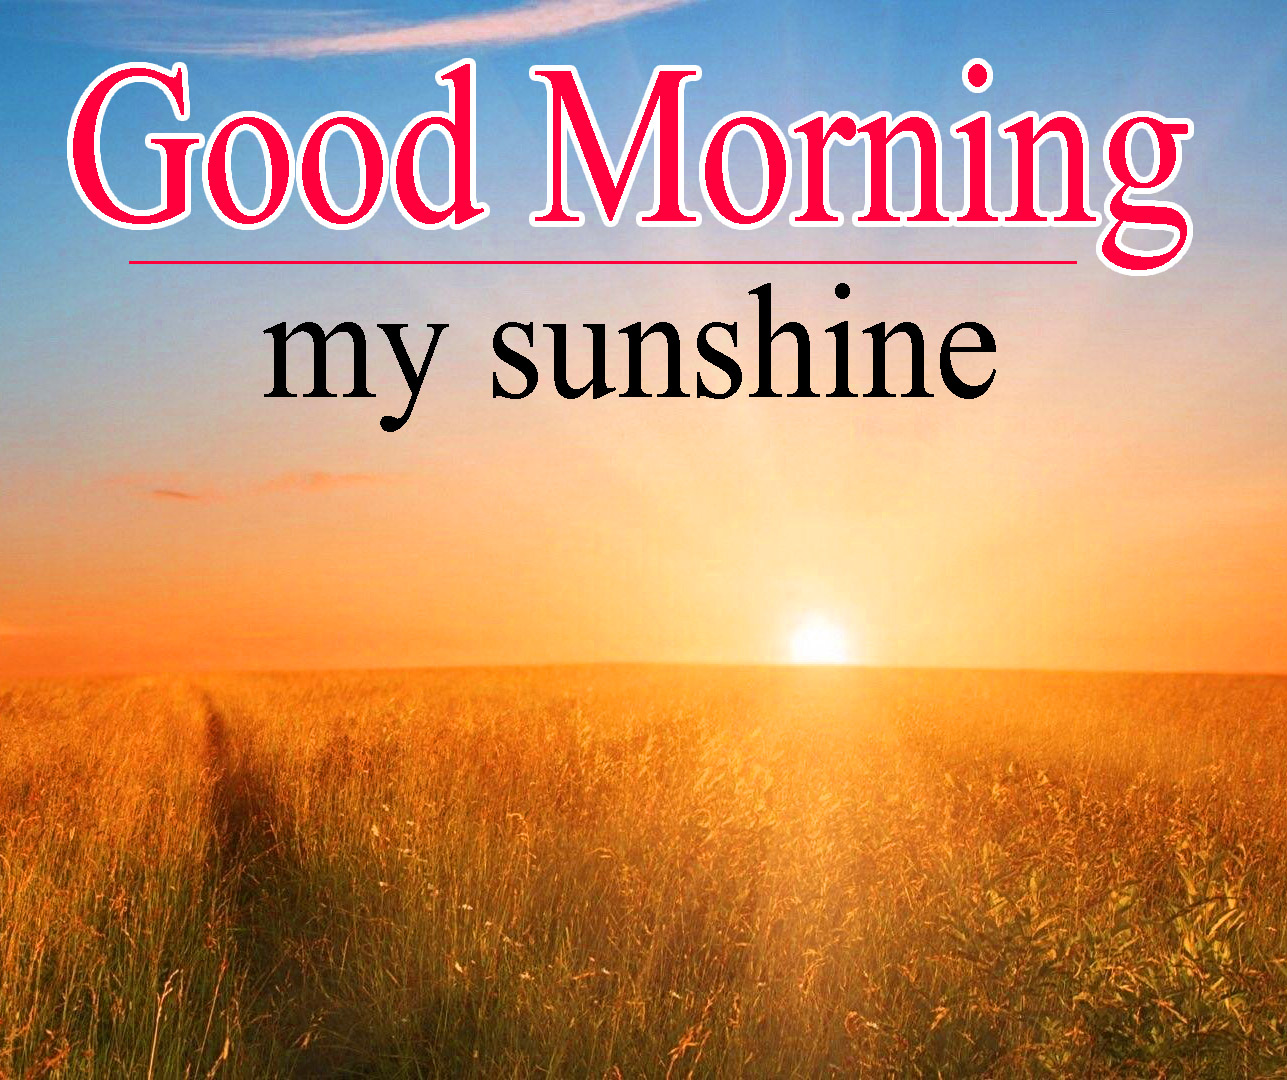 Sunsine Good Morning Images Photo Free Download